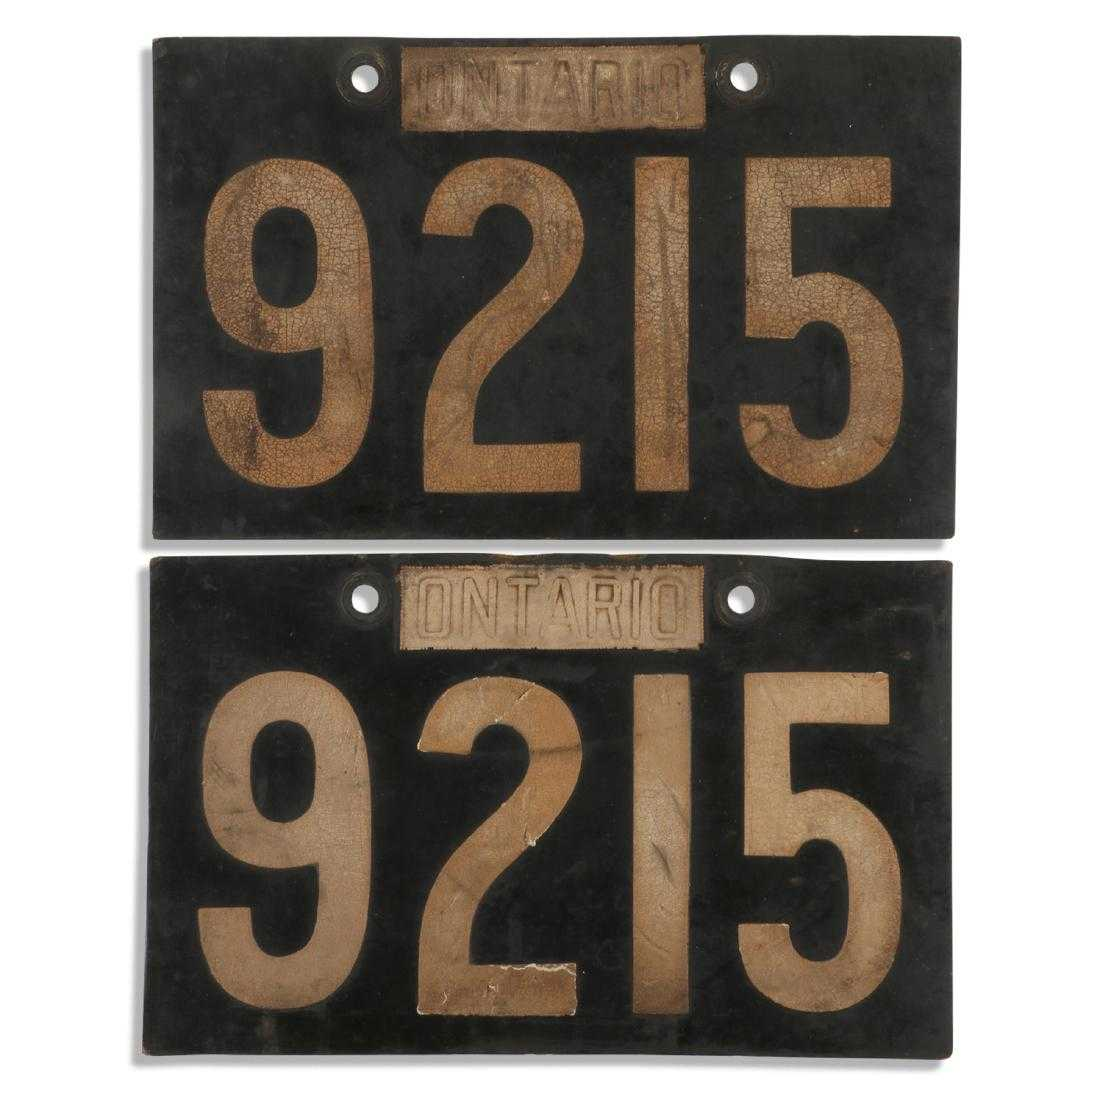 "Pair of 1910 rubber Ontario plates, with serial number ""9215"", each one 11 ¾ inches by 7 ¼ inches, with no cracks (est. CA$3,000-$5,000)."